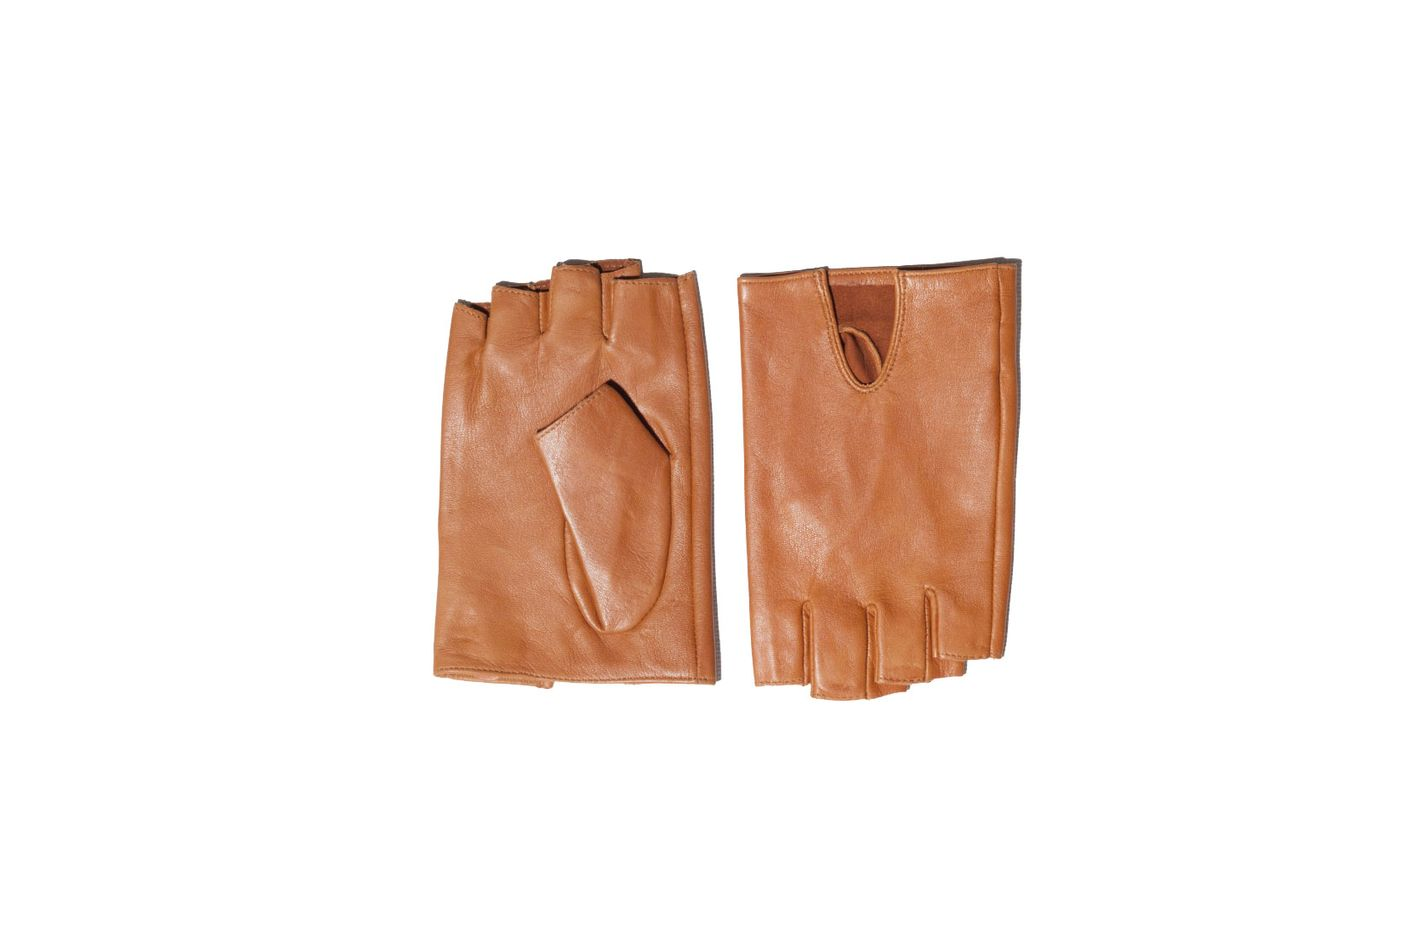 & Other Stories Fingerless Leather Gloves